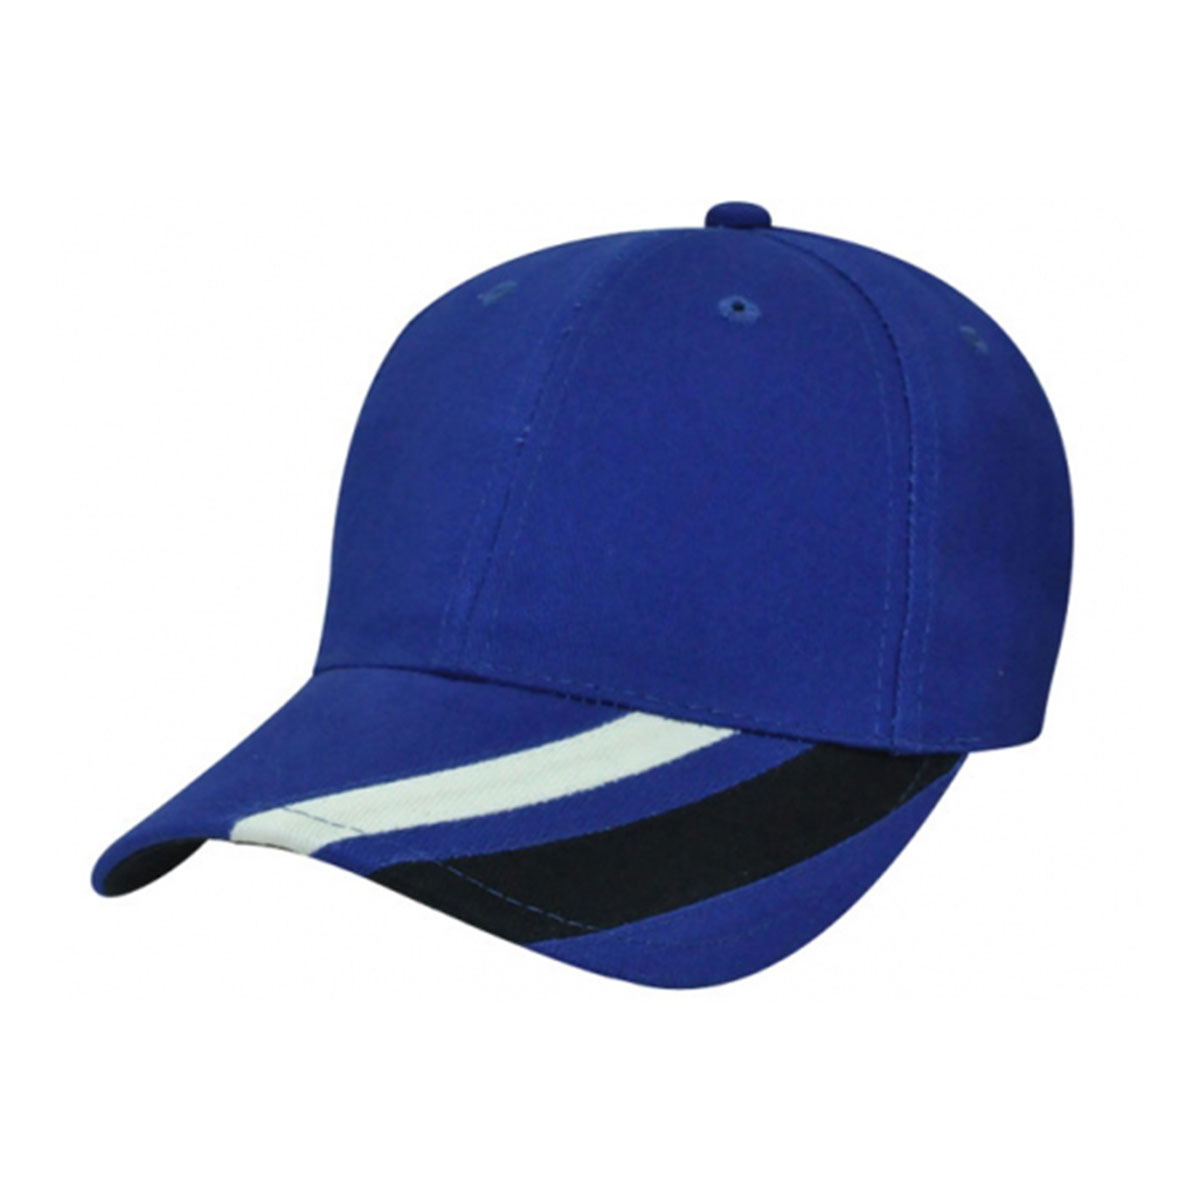 Metric Cap-Royal / White / Navy